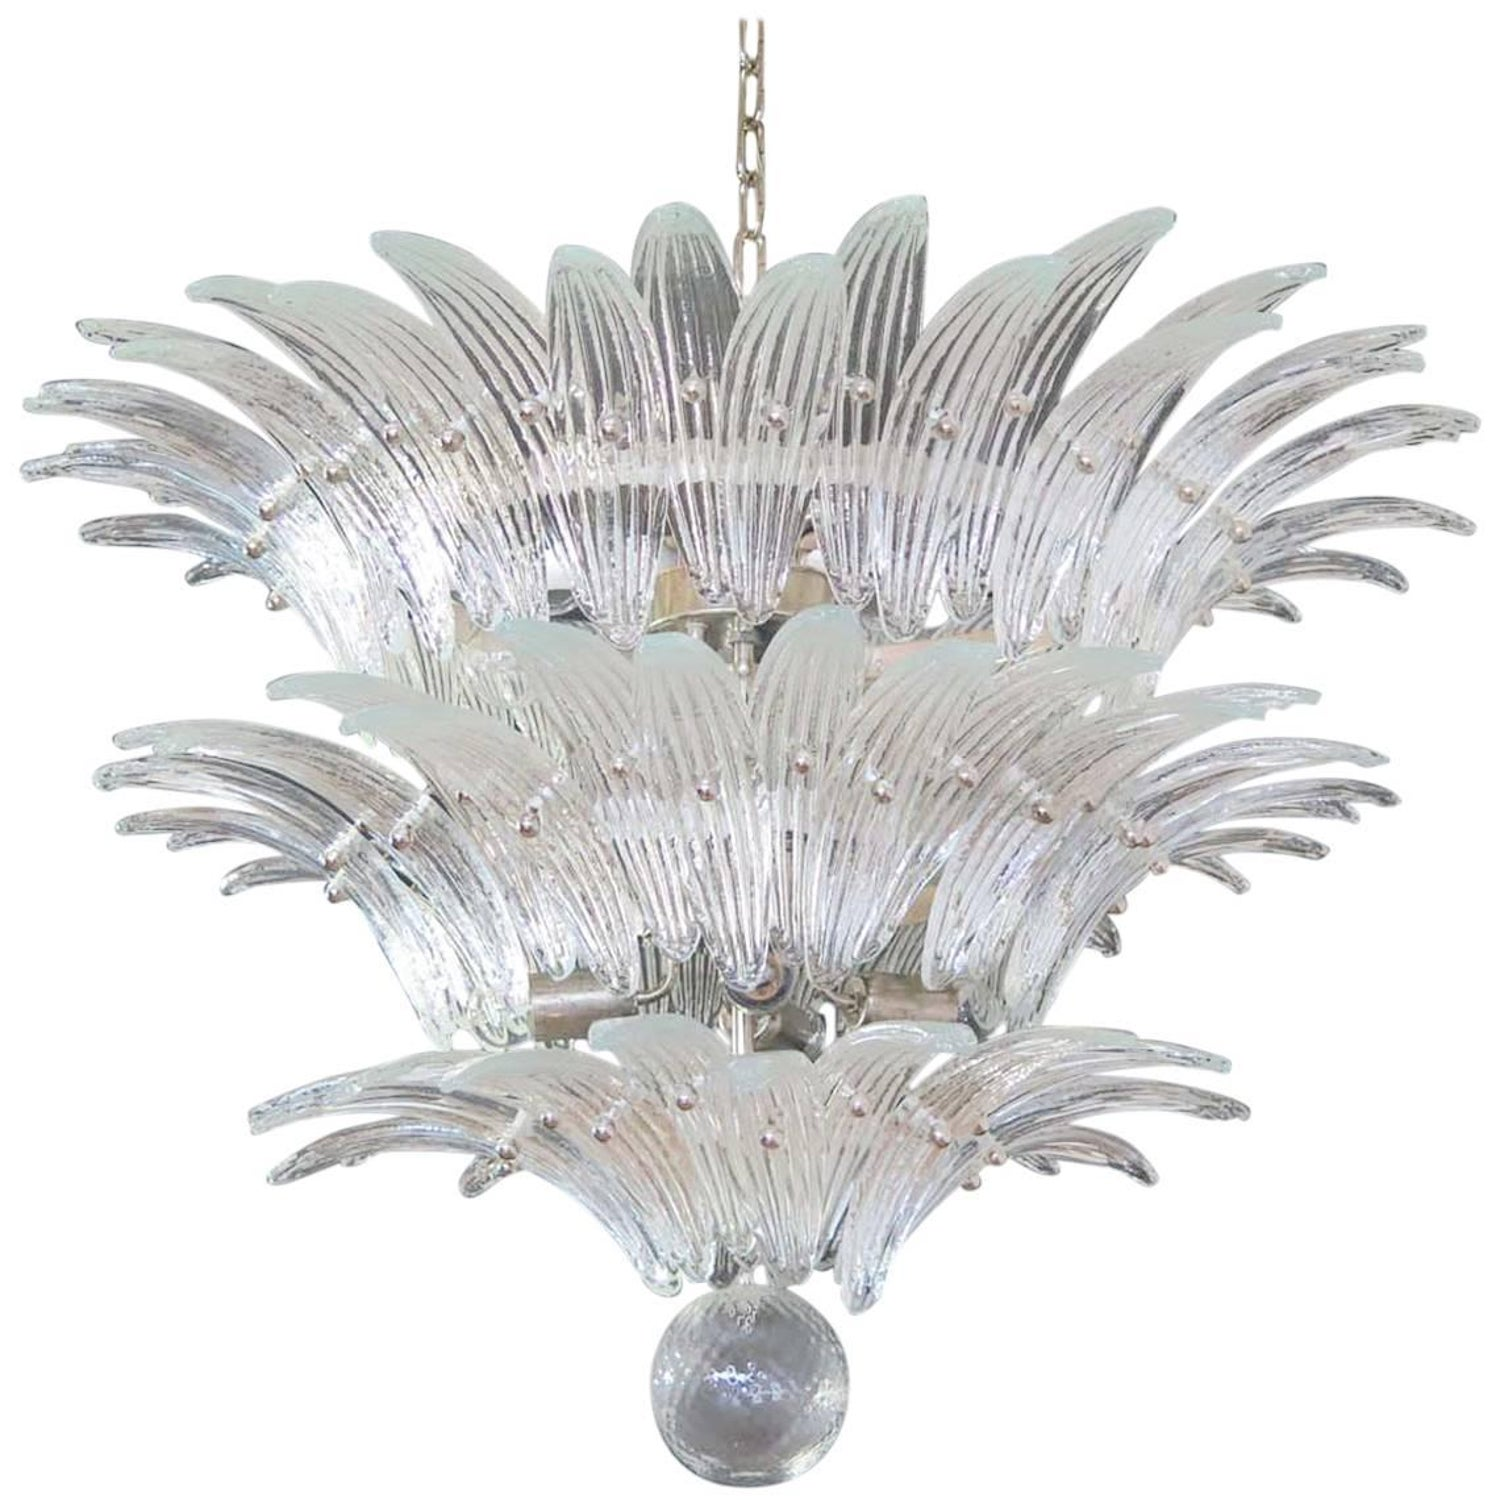 Palmette Ceiling Light Barovier and Toso Murano Chandelier at